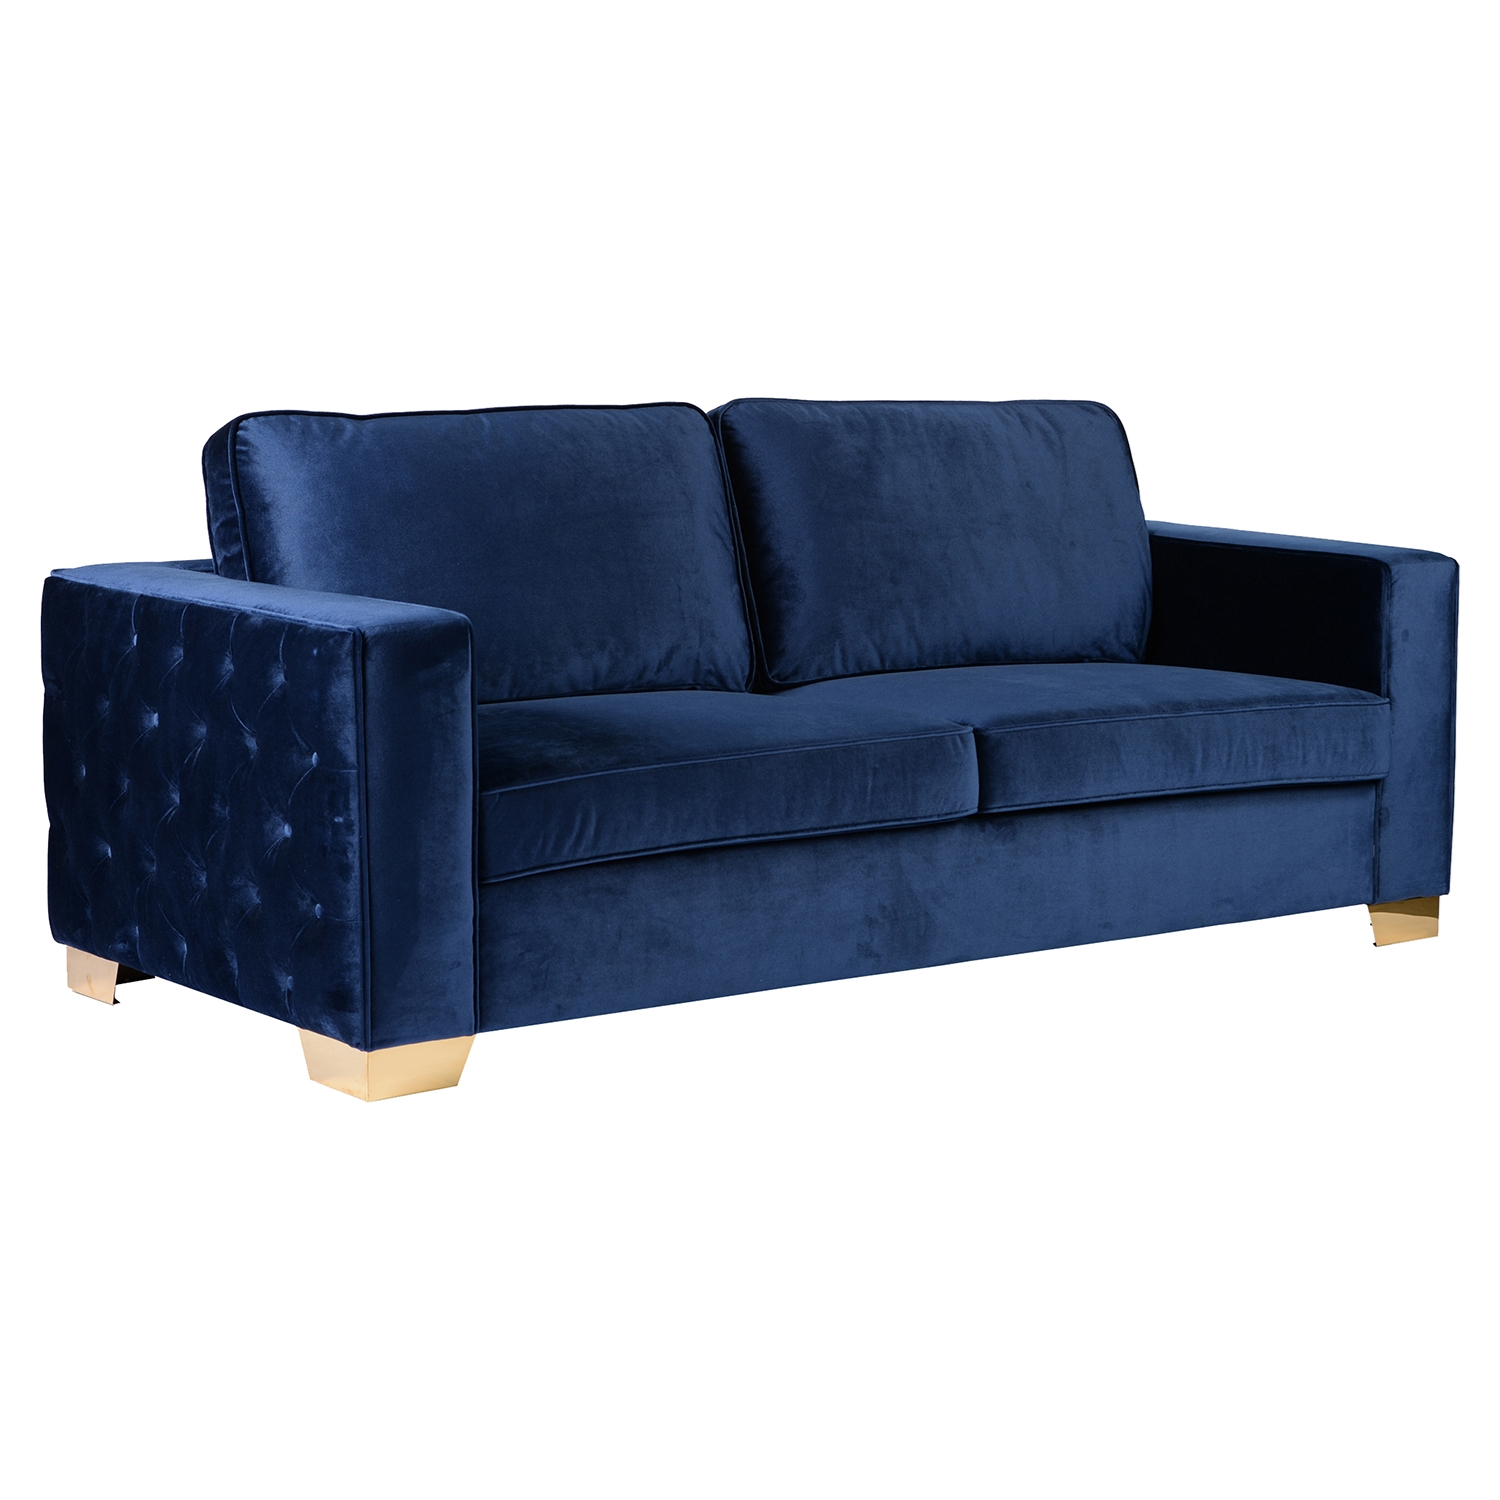 Isola Sofa - Blue Velvet, Tufted, Gold Metal Legs - AL-LCIS3BL